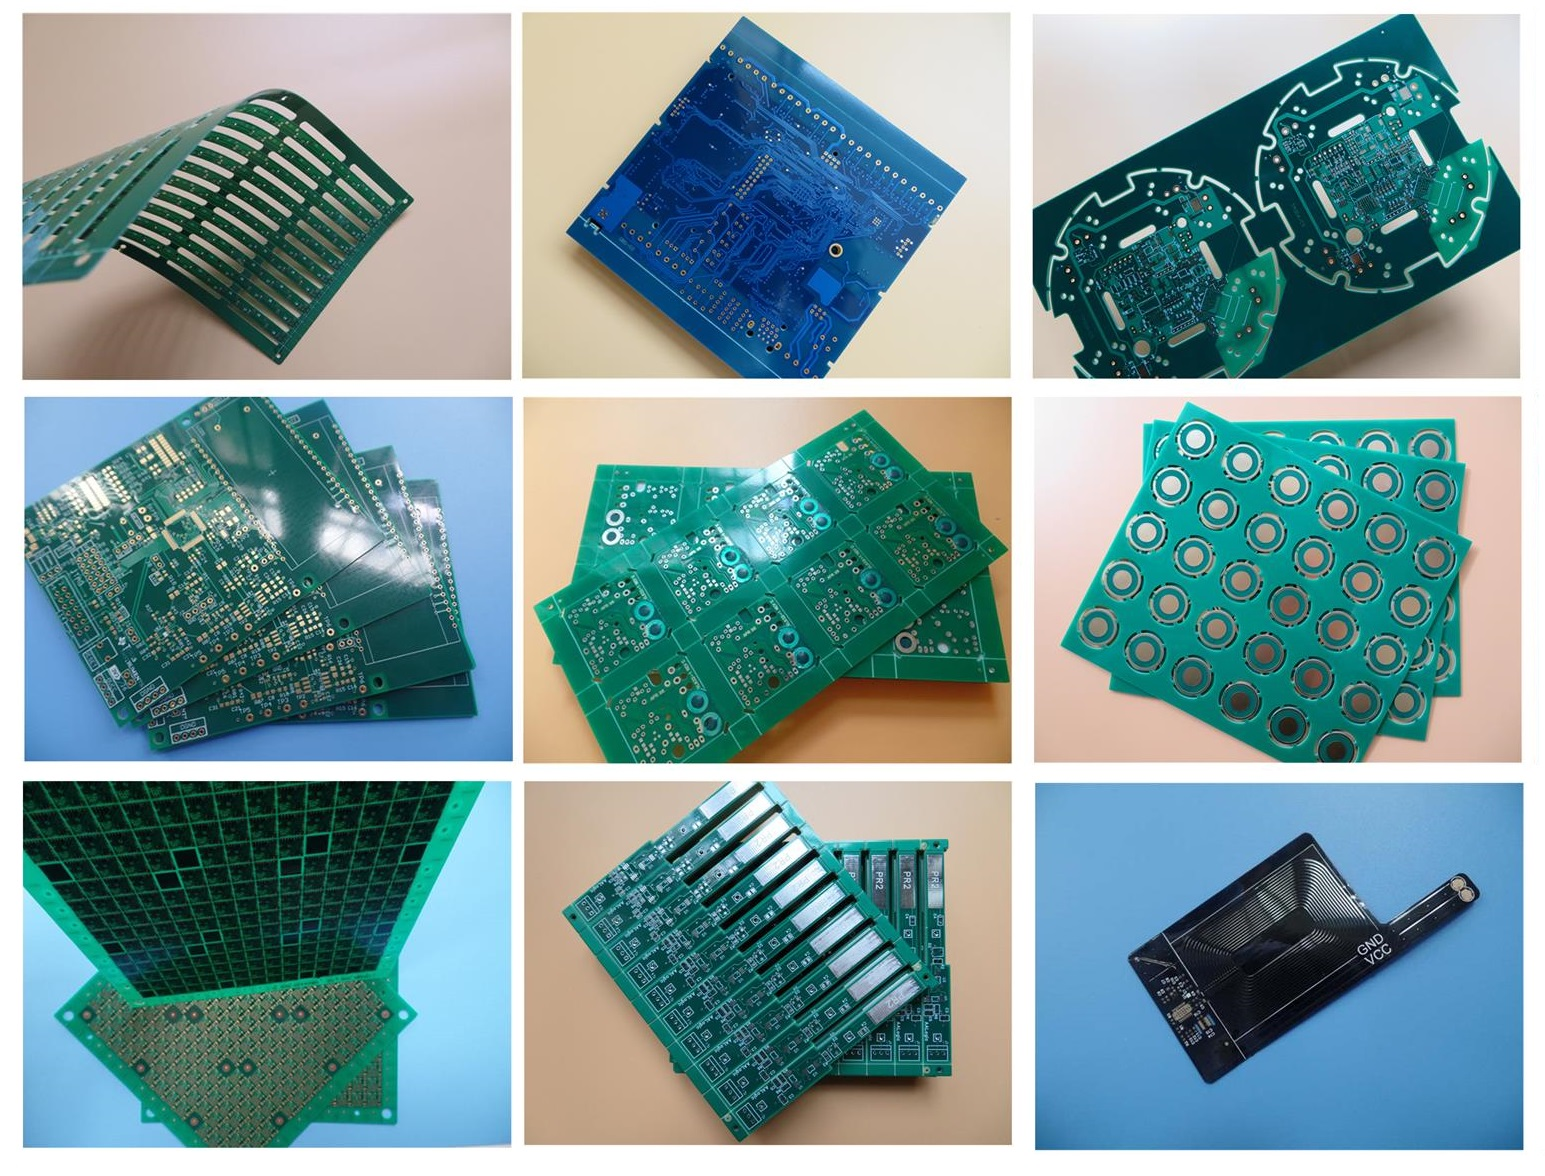 Prototype Pcb Built On Fr 4 And Ro4003c With 30 Layer For Sale Aeronautics Printed Circuit Board 8l Fr4 Immersion Gold Hard 02 15mm 015mm